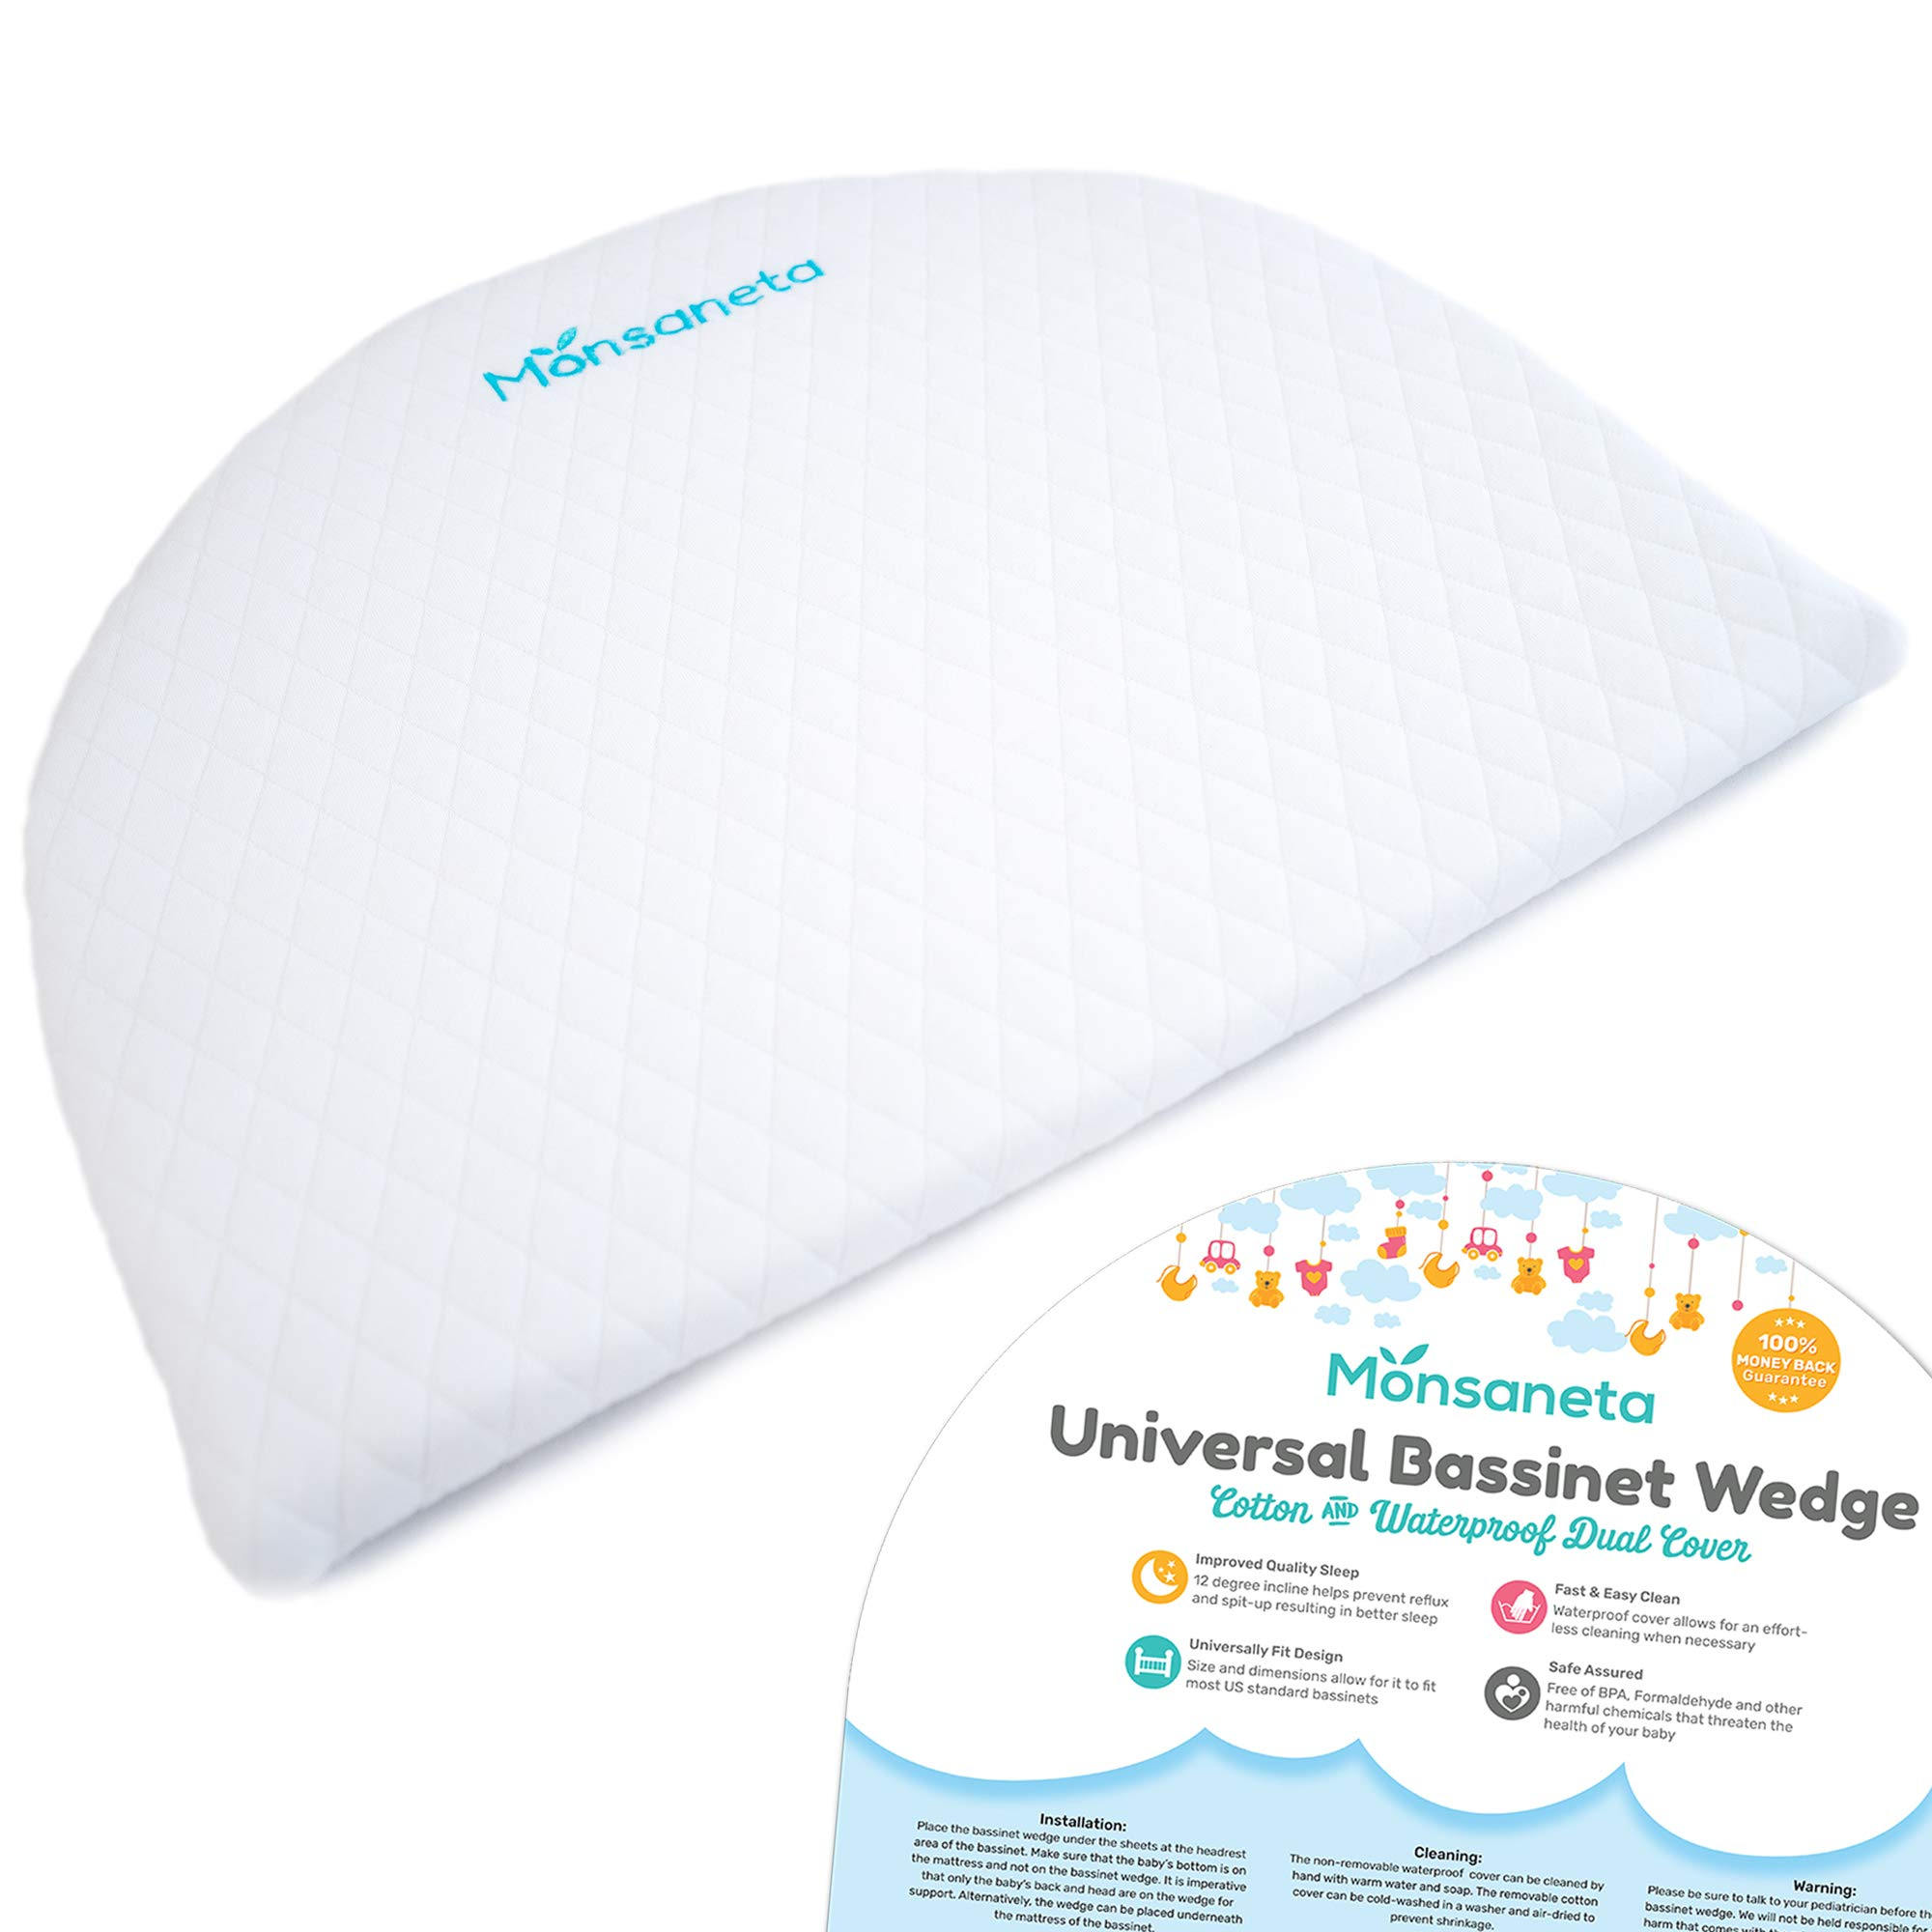 Universal Bassinet Wedge for Baby Crib | Sleep Positioner for Infant Acid Reflux Relief | Elevated Incline Sleeping Pillow for Babies | Waterproof Removable Cotton Cover | Memory Foam Wedge for Reflux